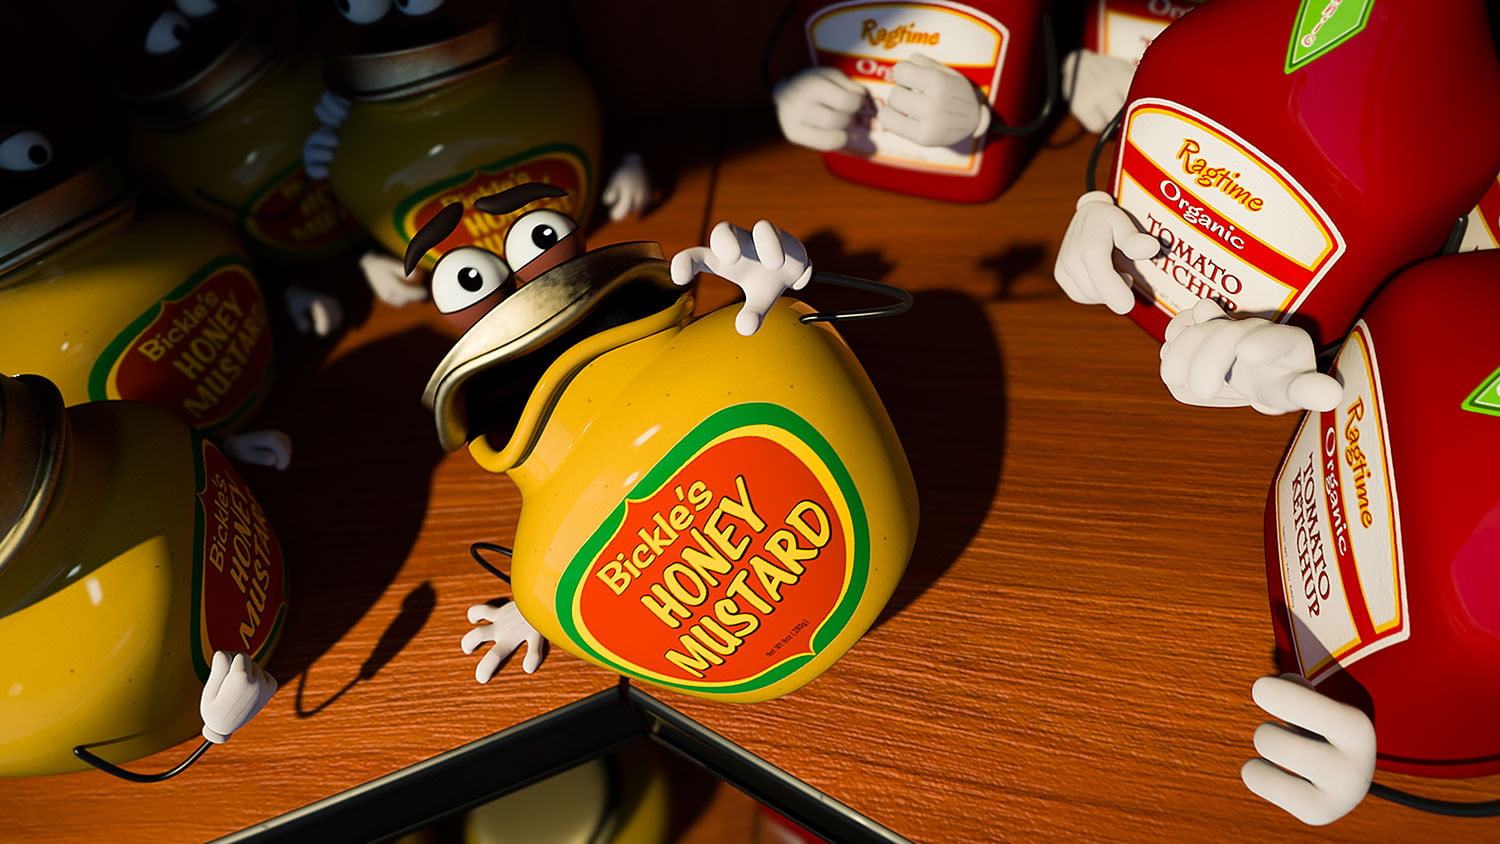 Sausage Party Review: Raunchy, Ridiculous, And Clever, Too